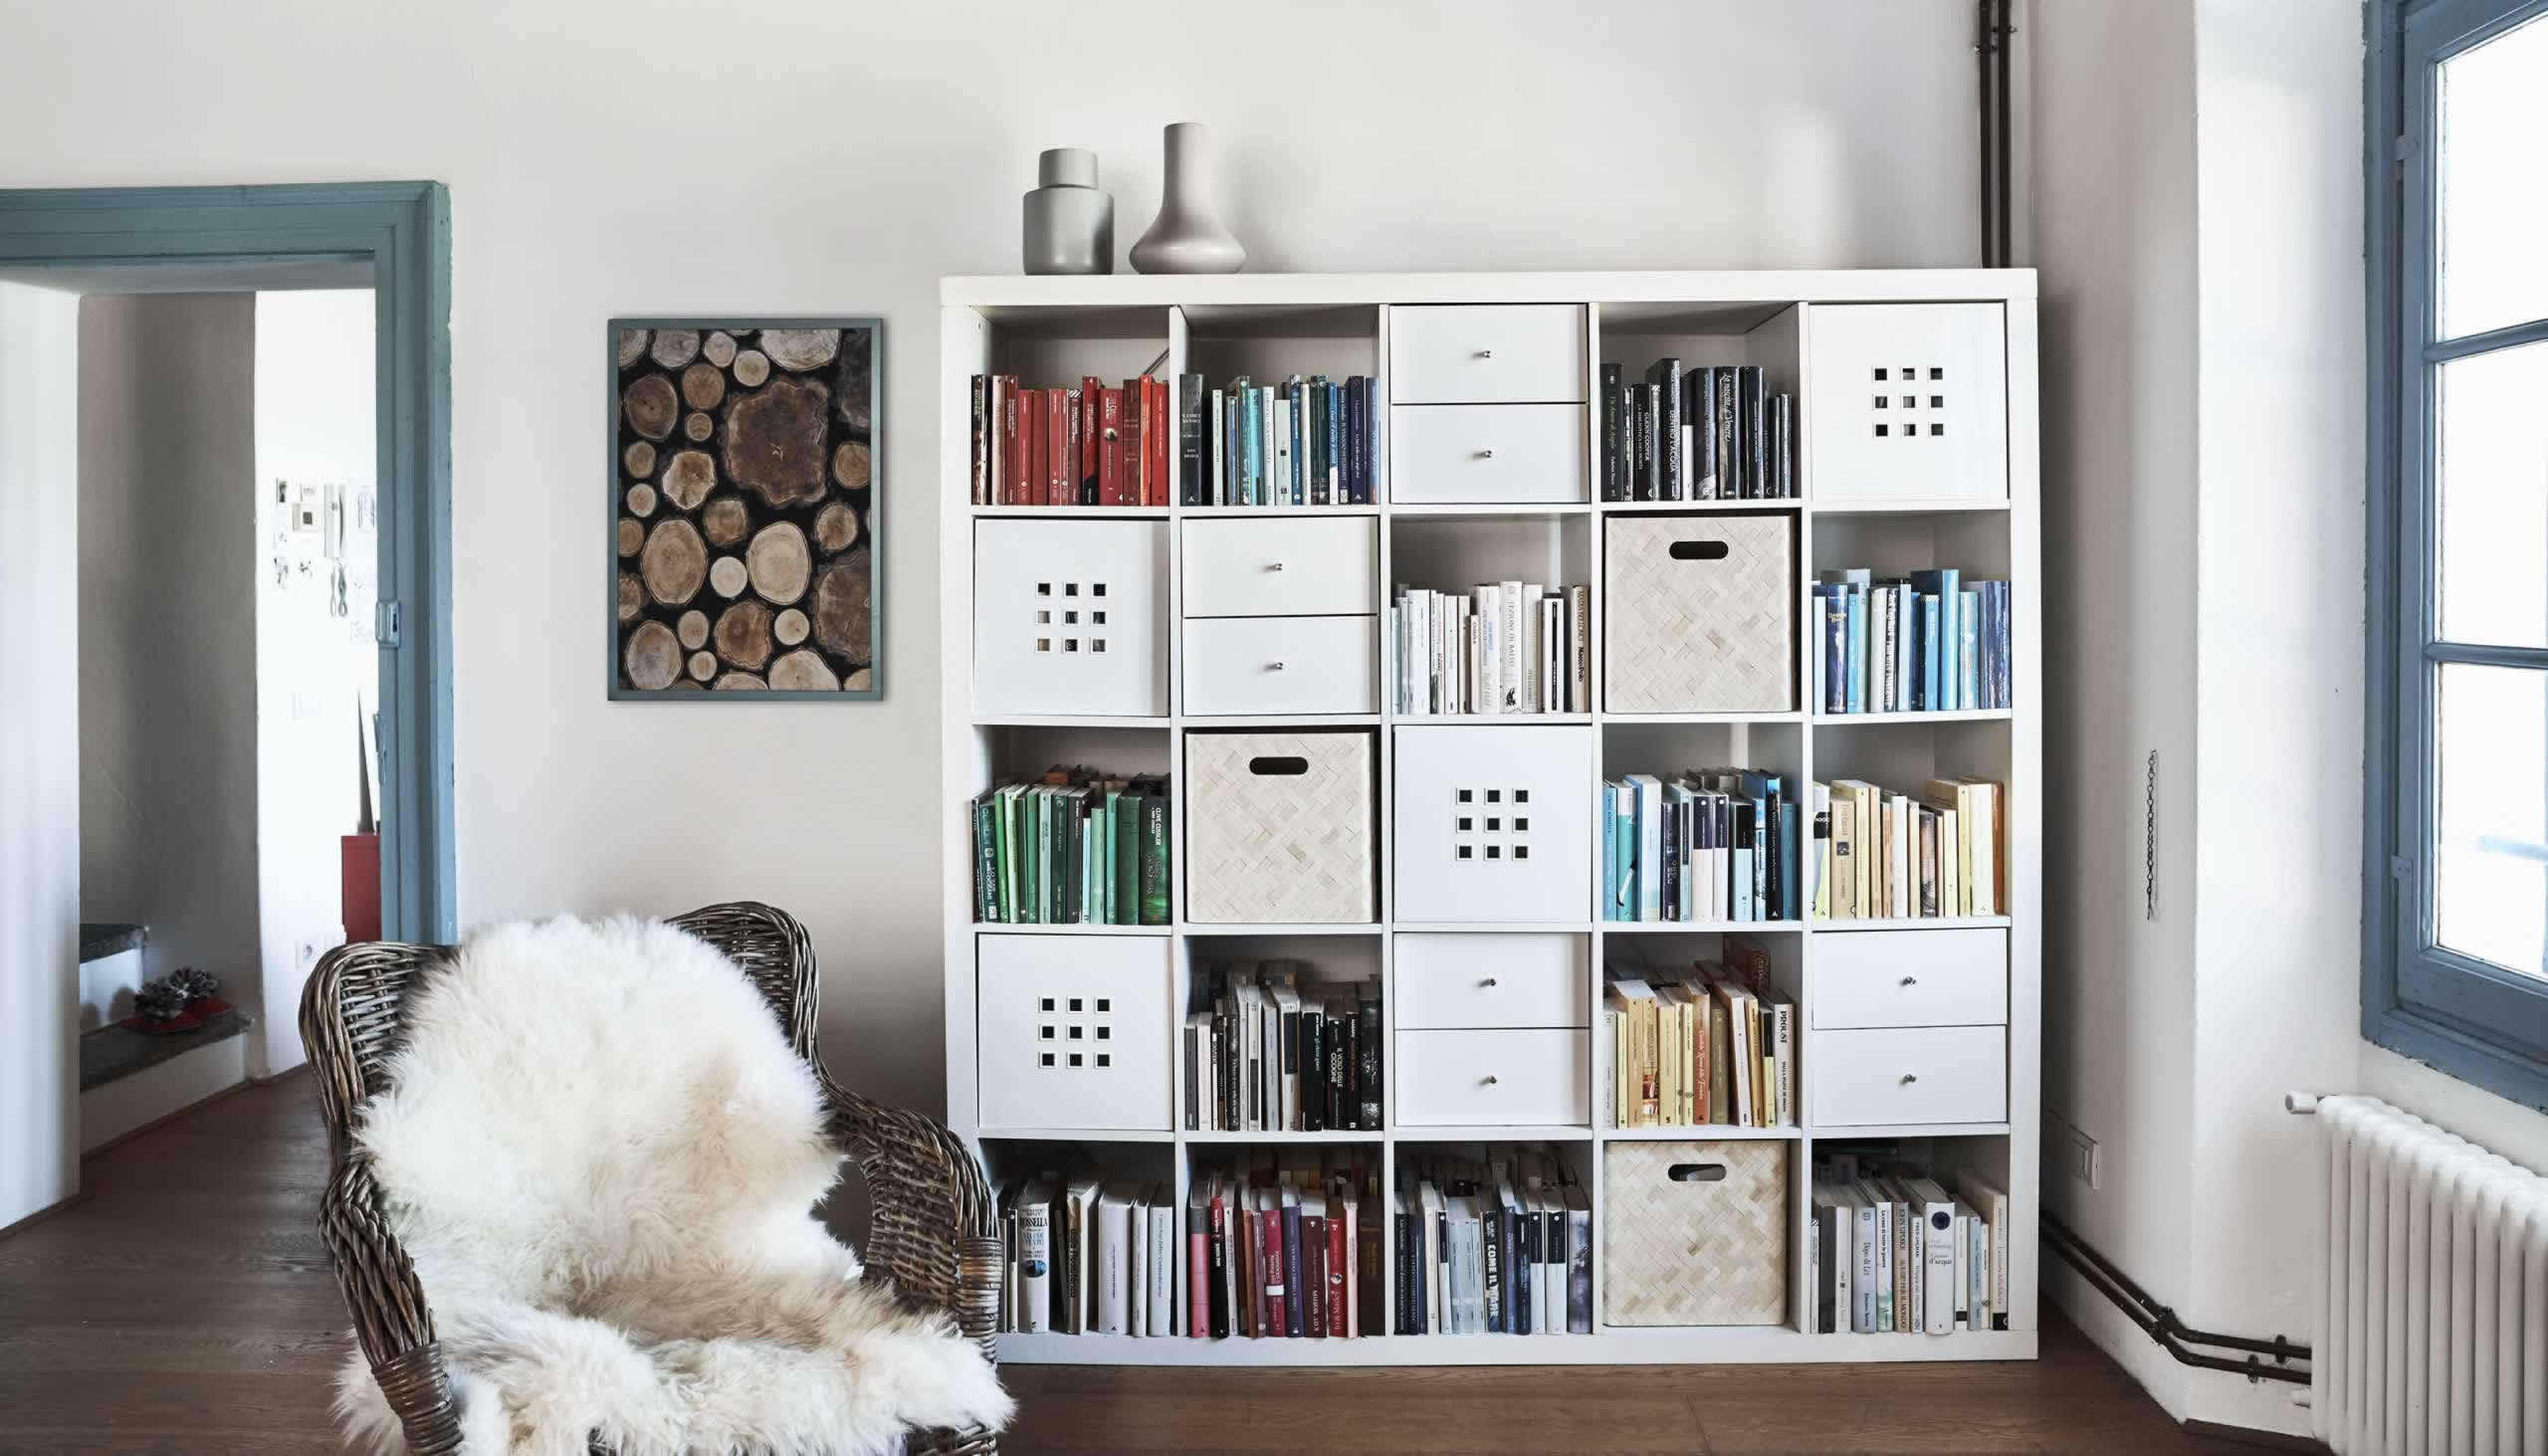 IKEA Ideas - 7 ideas for being more organised at home